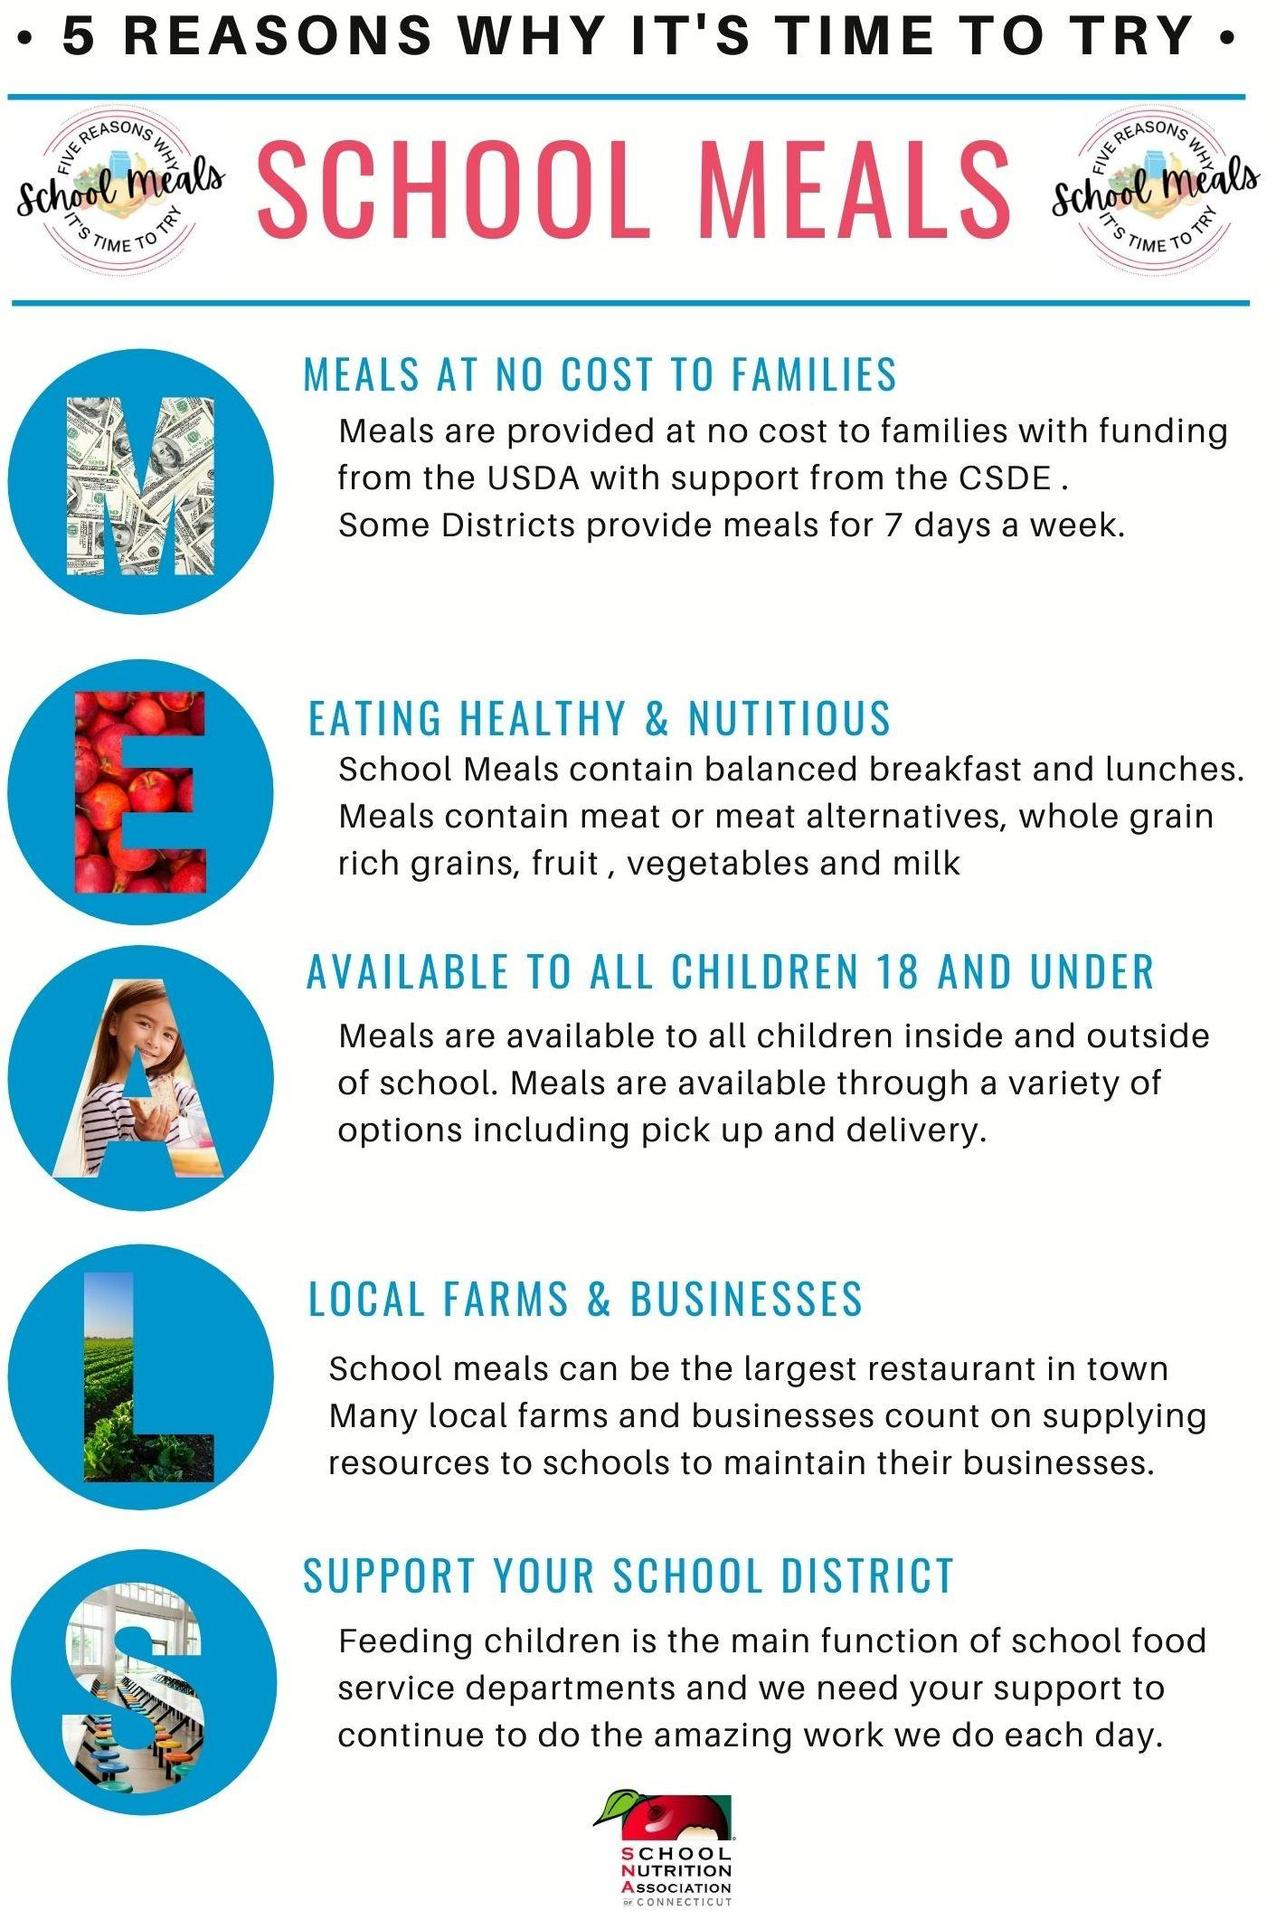 5 Reasons Why It's Time to Try School MEALS